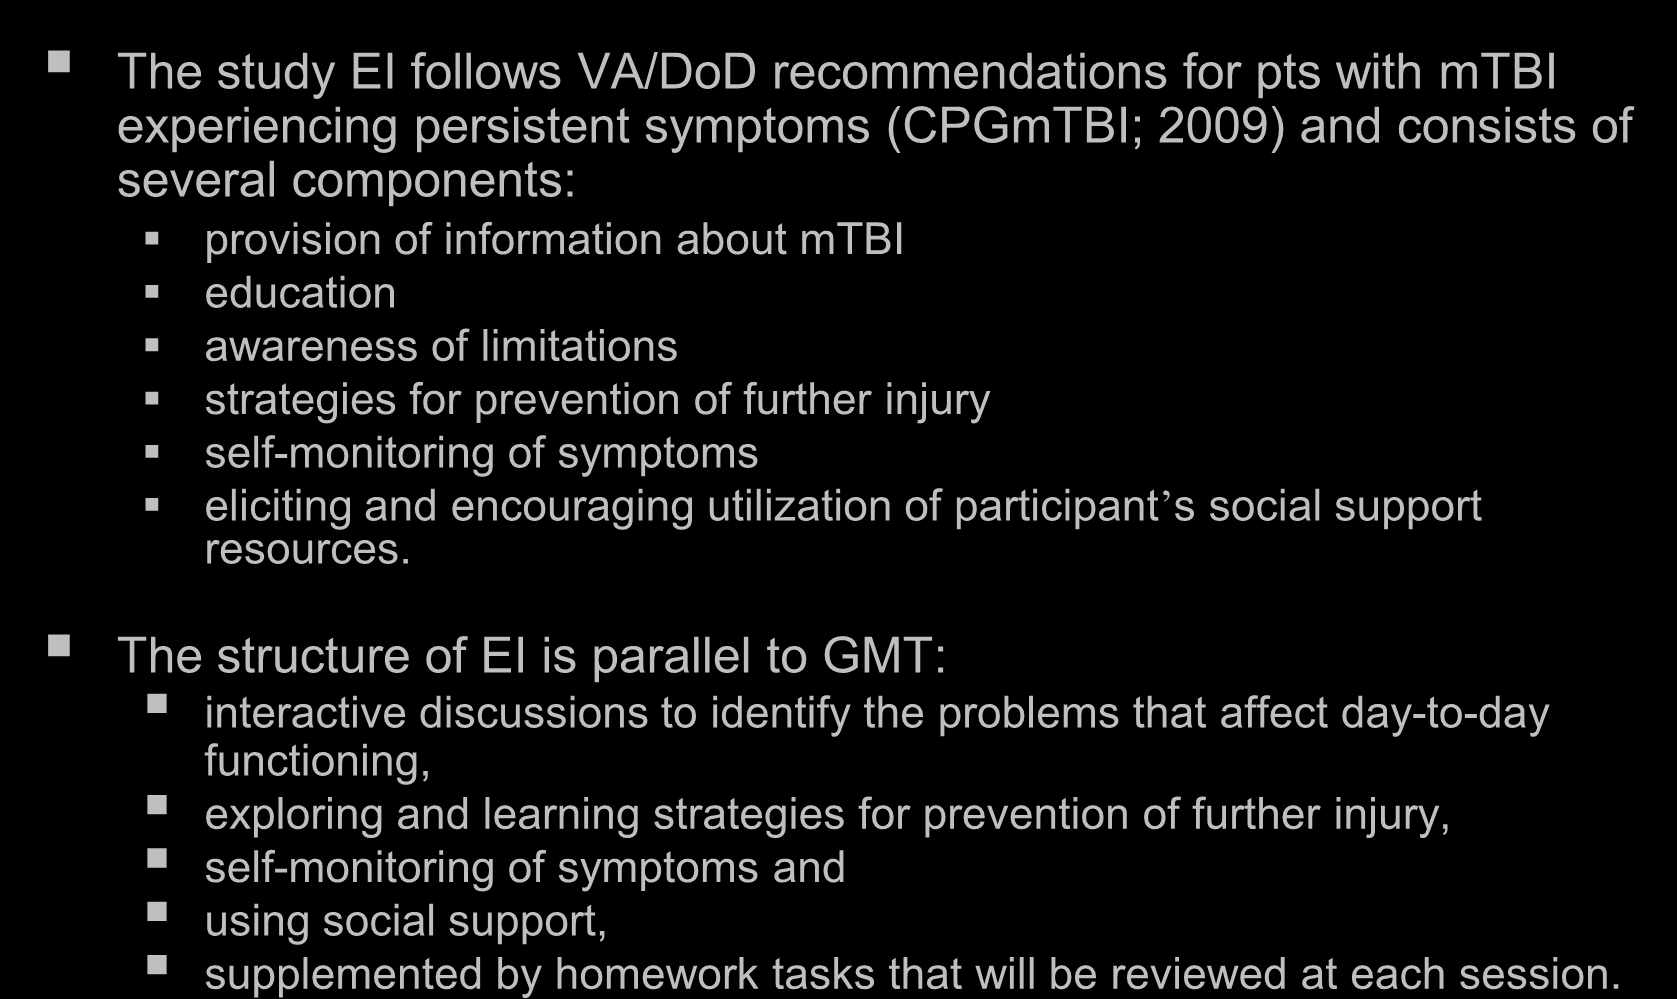 Educational Intervention (EI) The study EI follows VA/DoD recommendations for pts with mtbi experiencing persistent symptoms (CPGmTBI; 2009) and consists of several components: provision of